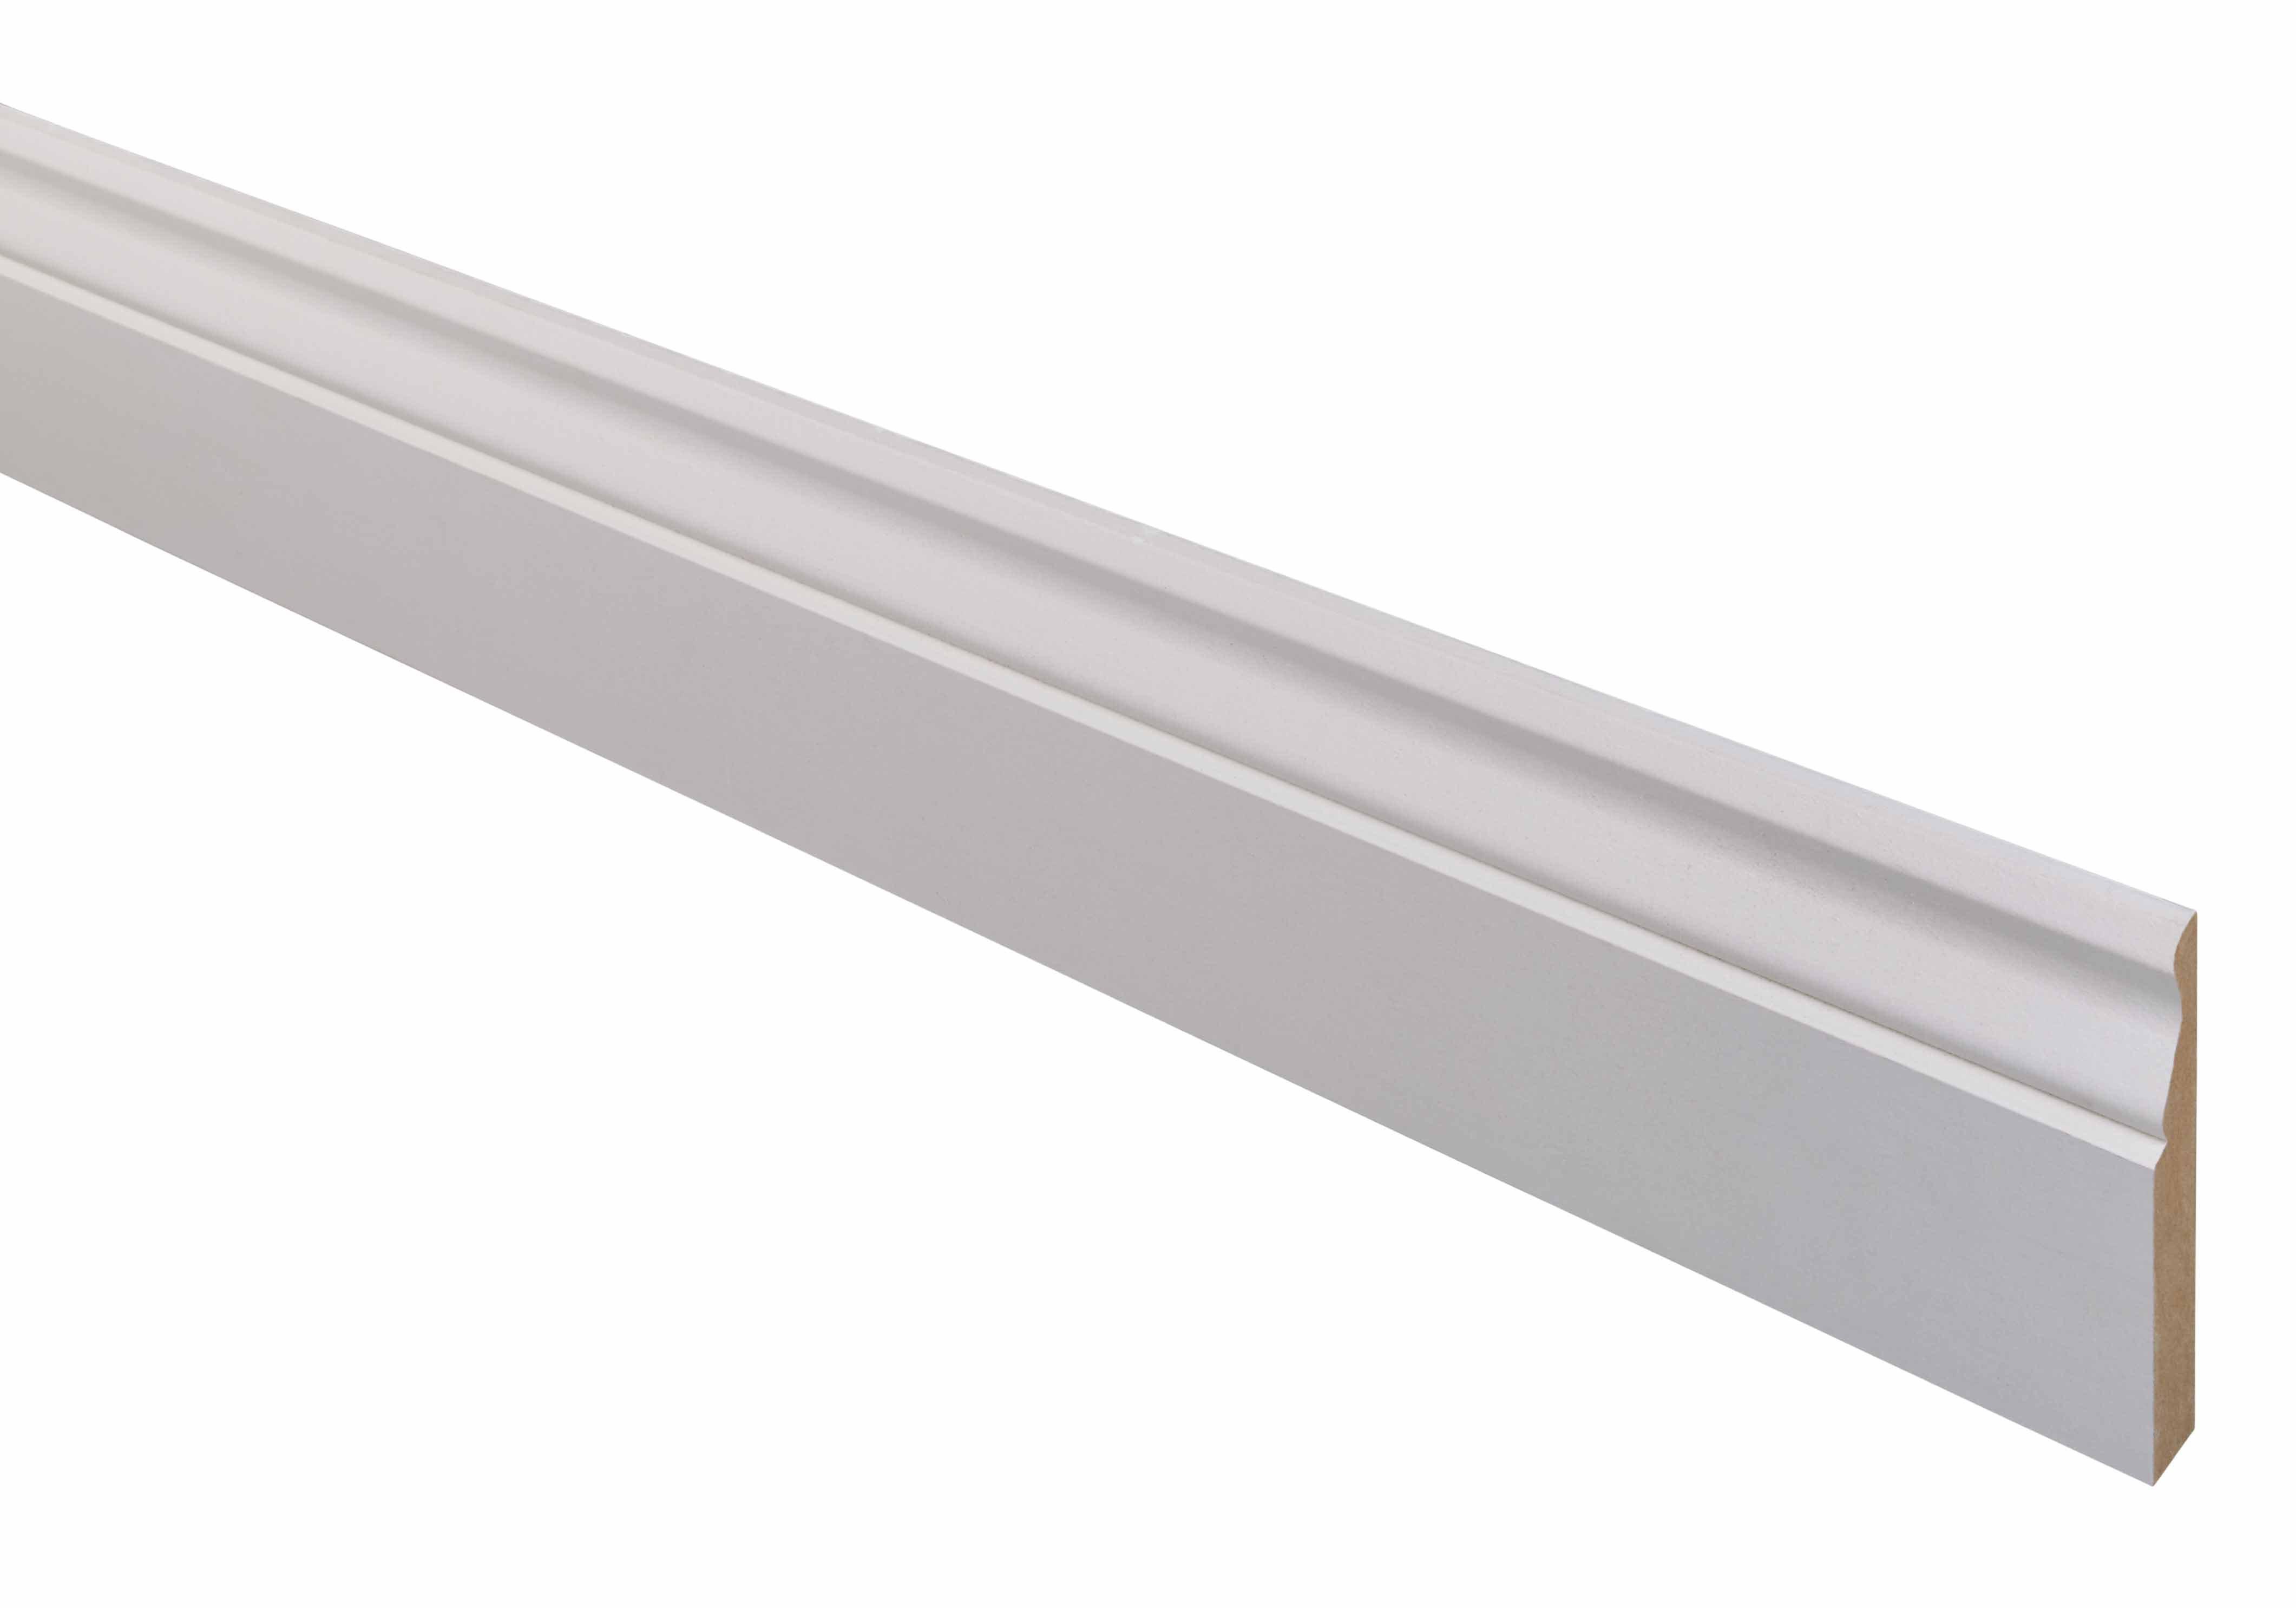 10 MDF Ogee Skirting Mouldings 18 x 119 x 2400mm